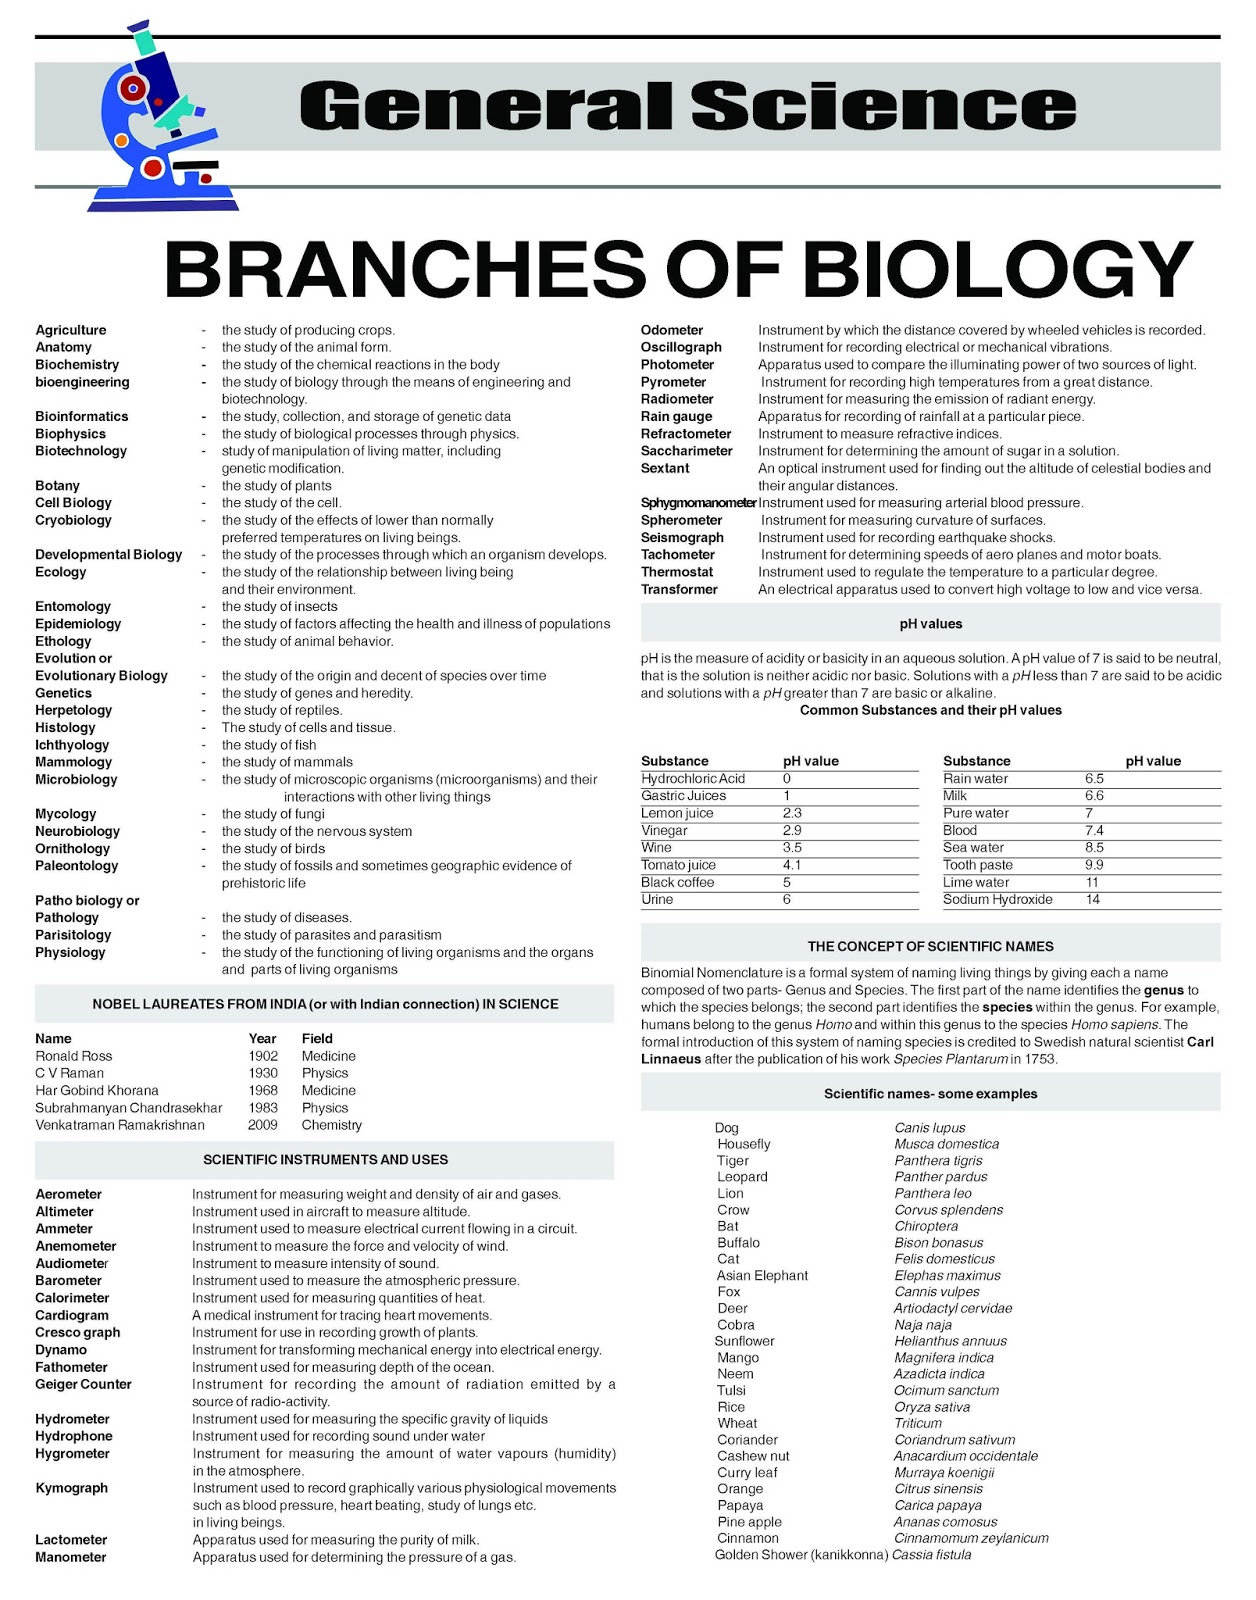 Kerala Psc Adda Branches Of Biology And Some Facts